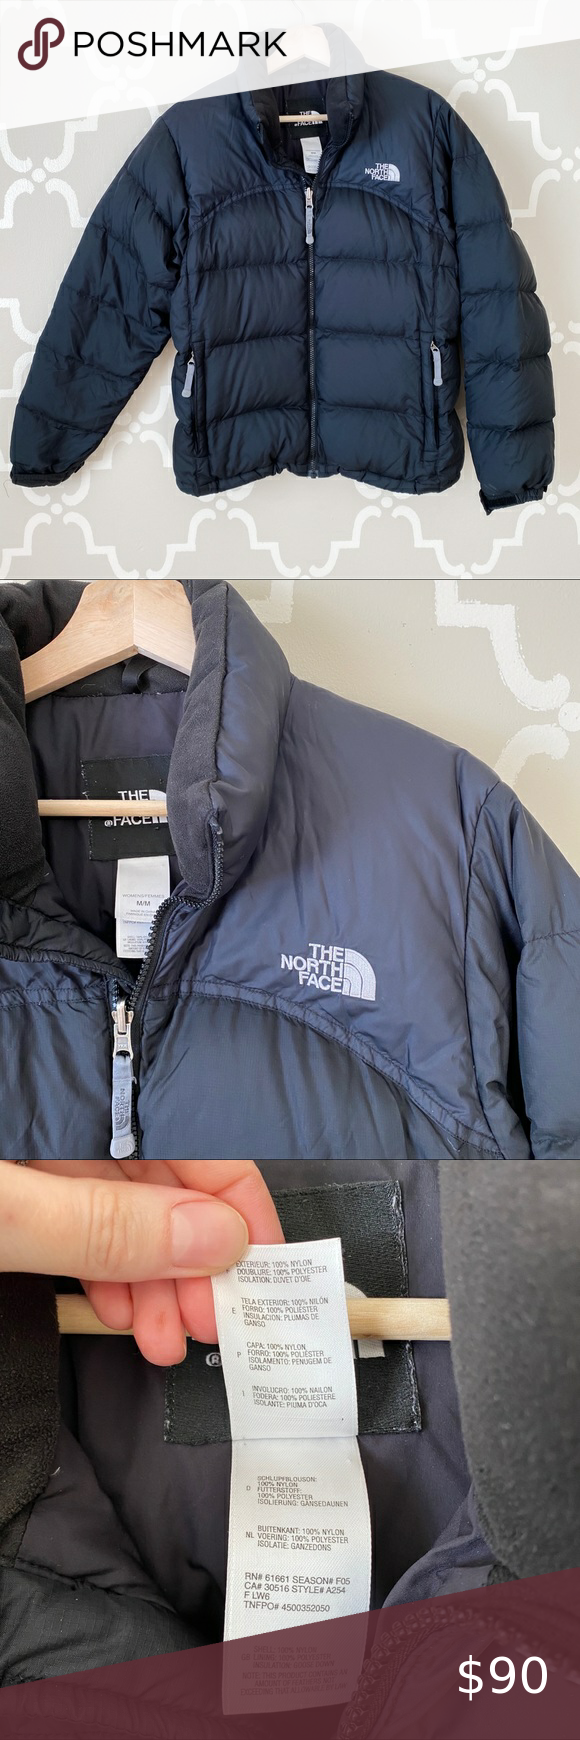 The North Face Women S Nuptse Down Jacket Style A254 700 Welcome To My Closet Here You Will Find Gently Used North Face Women North Face 700 The North Face [ 1740 x 580 Pixel ]